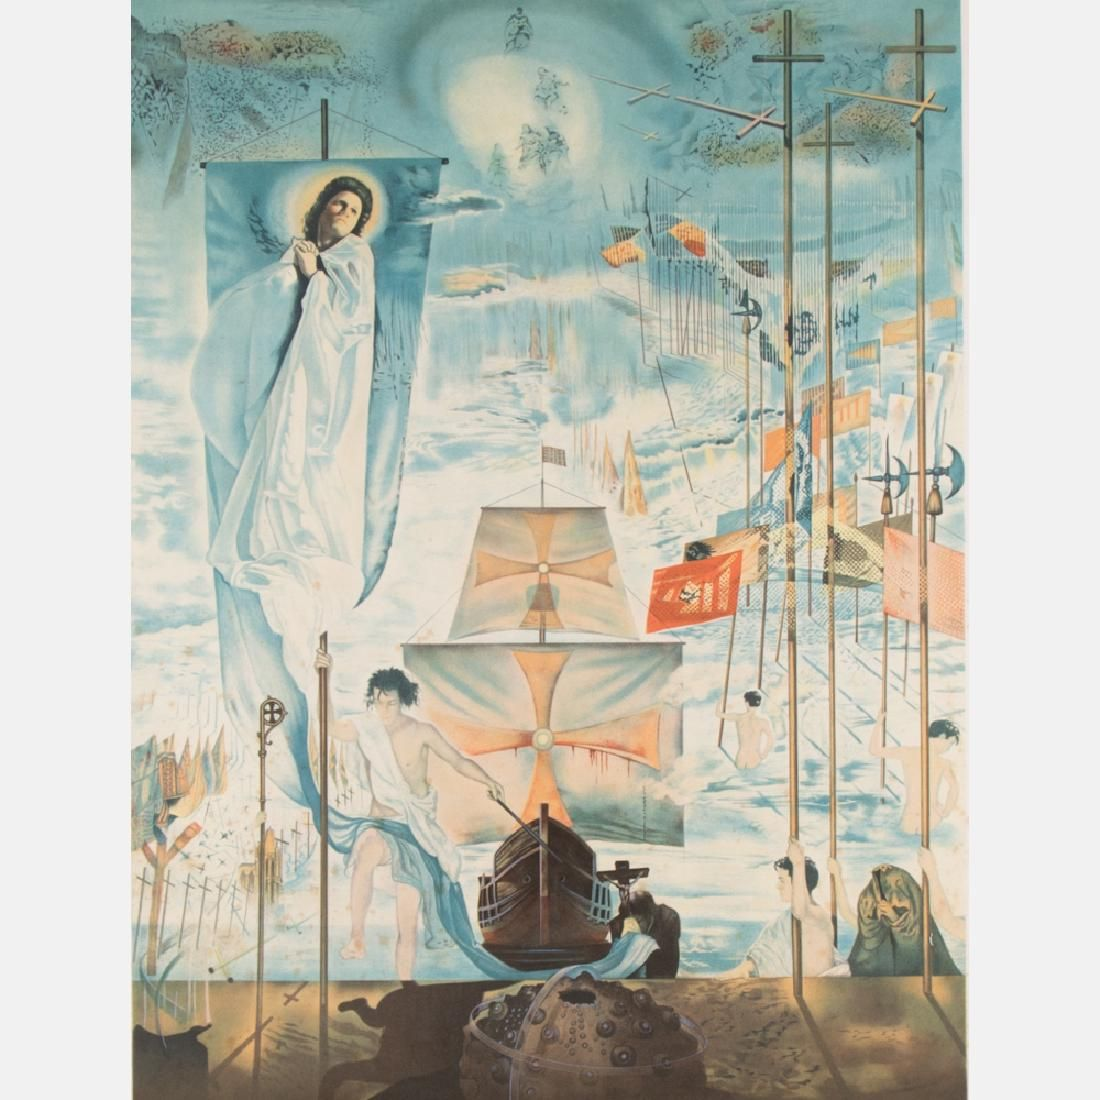 Salvador Dali (1904-1989) Discovery of America by